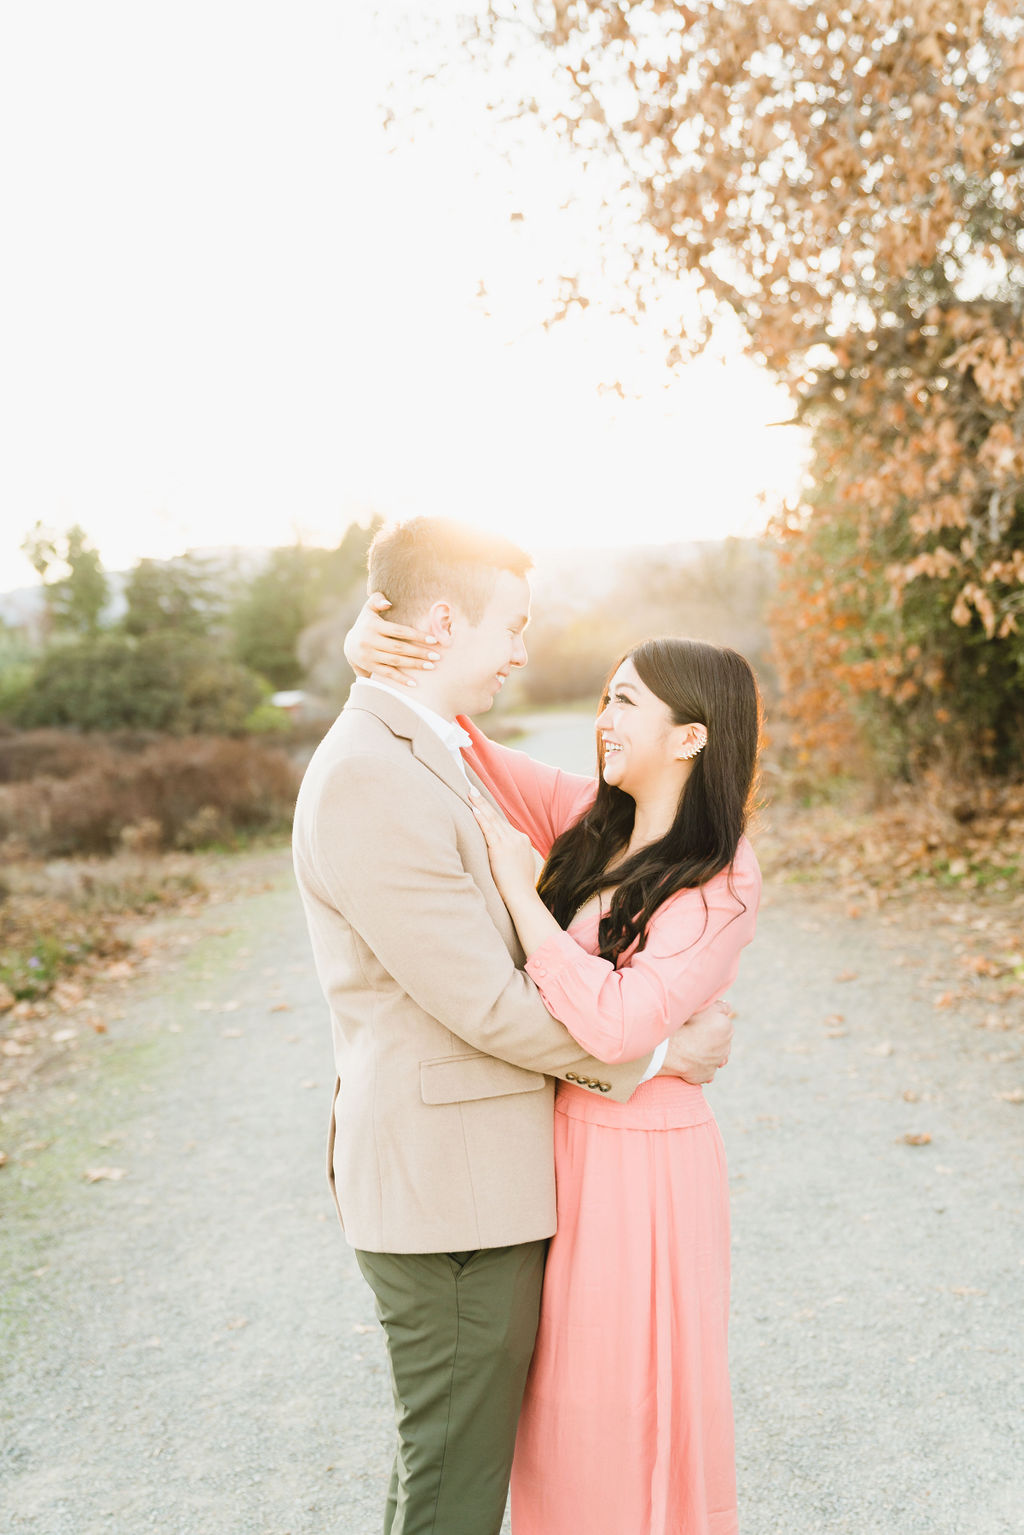 woman in pink dress embracing with her boyfriend